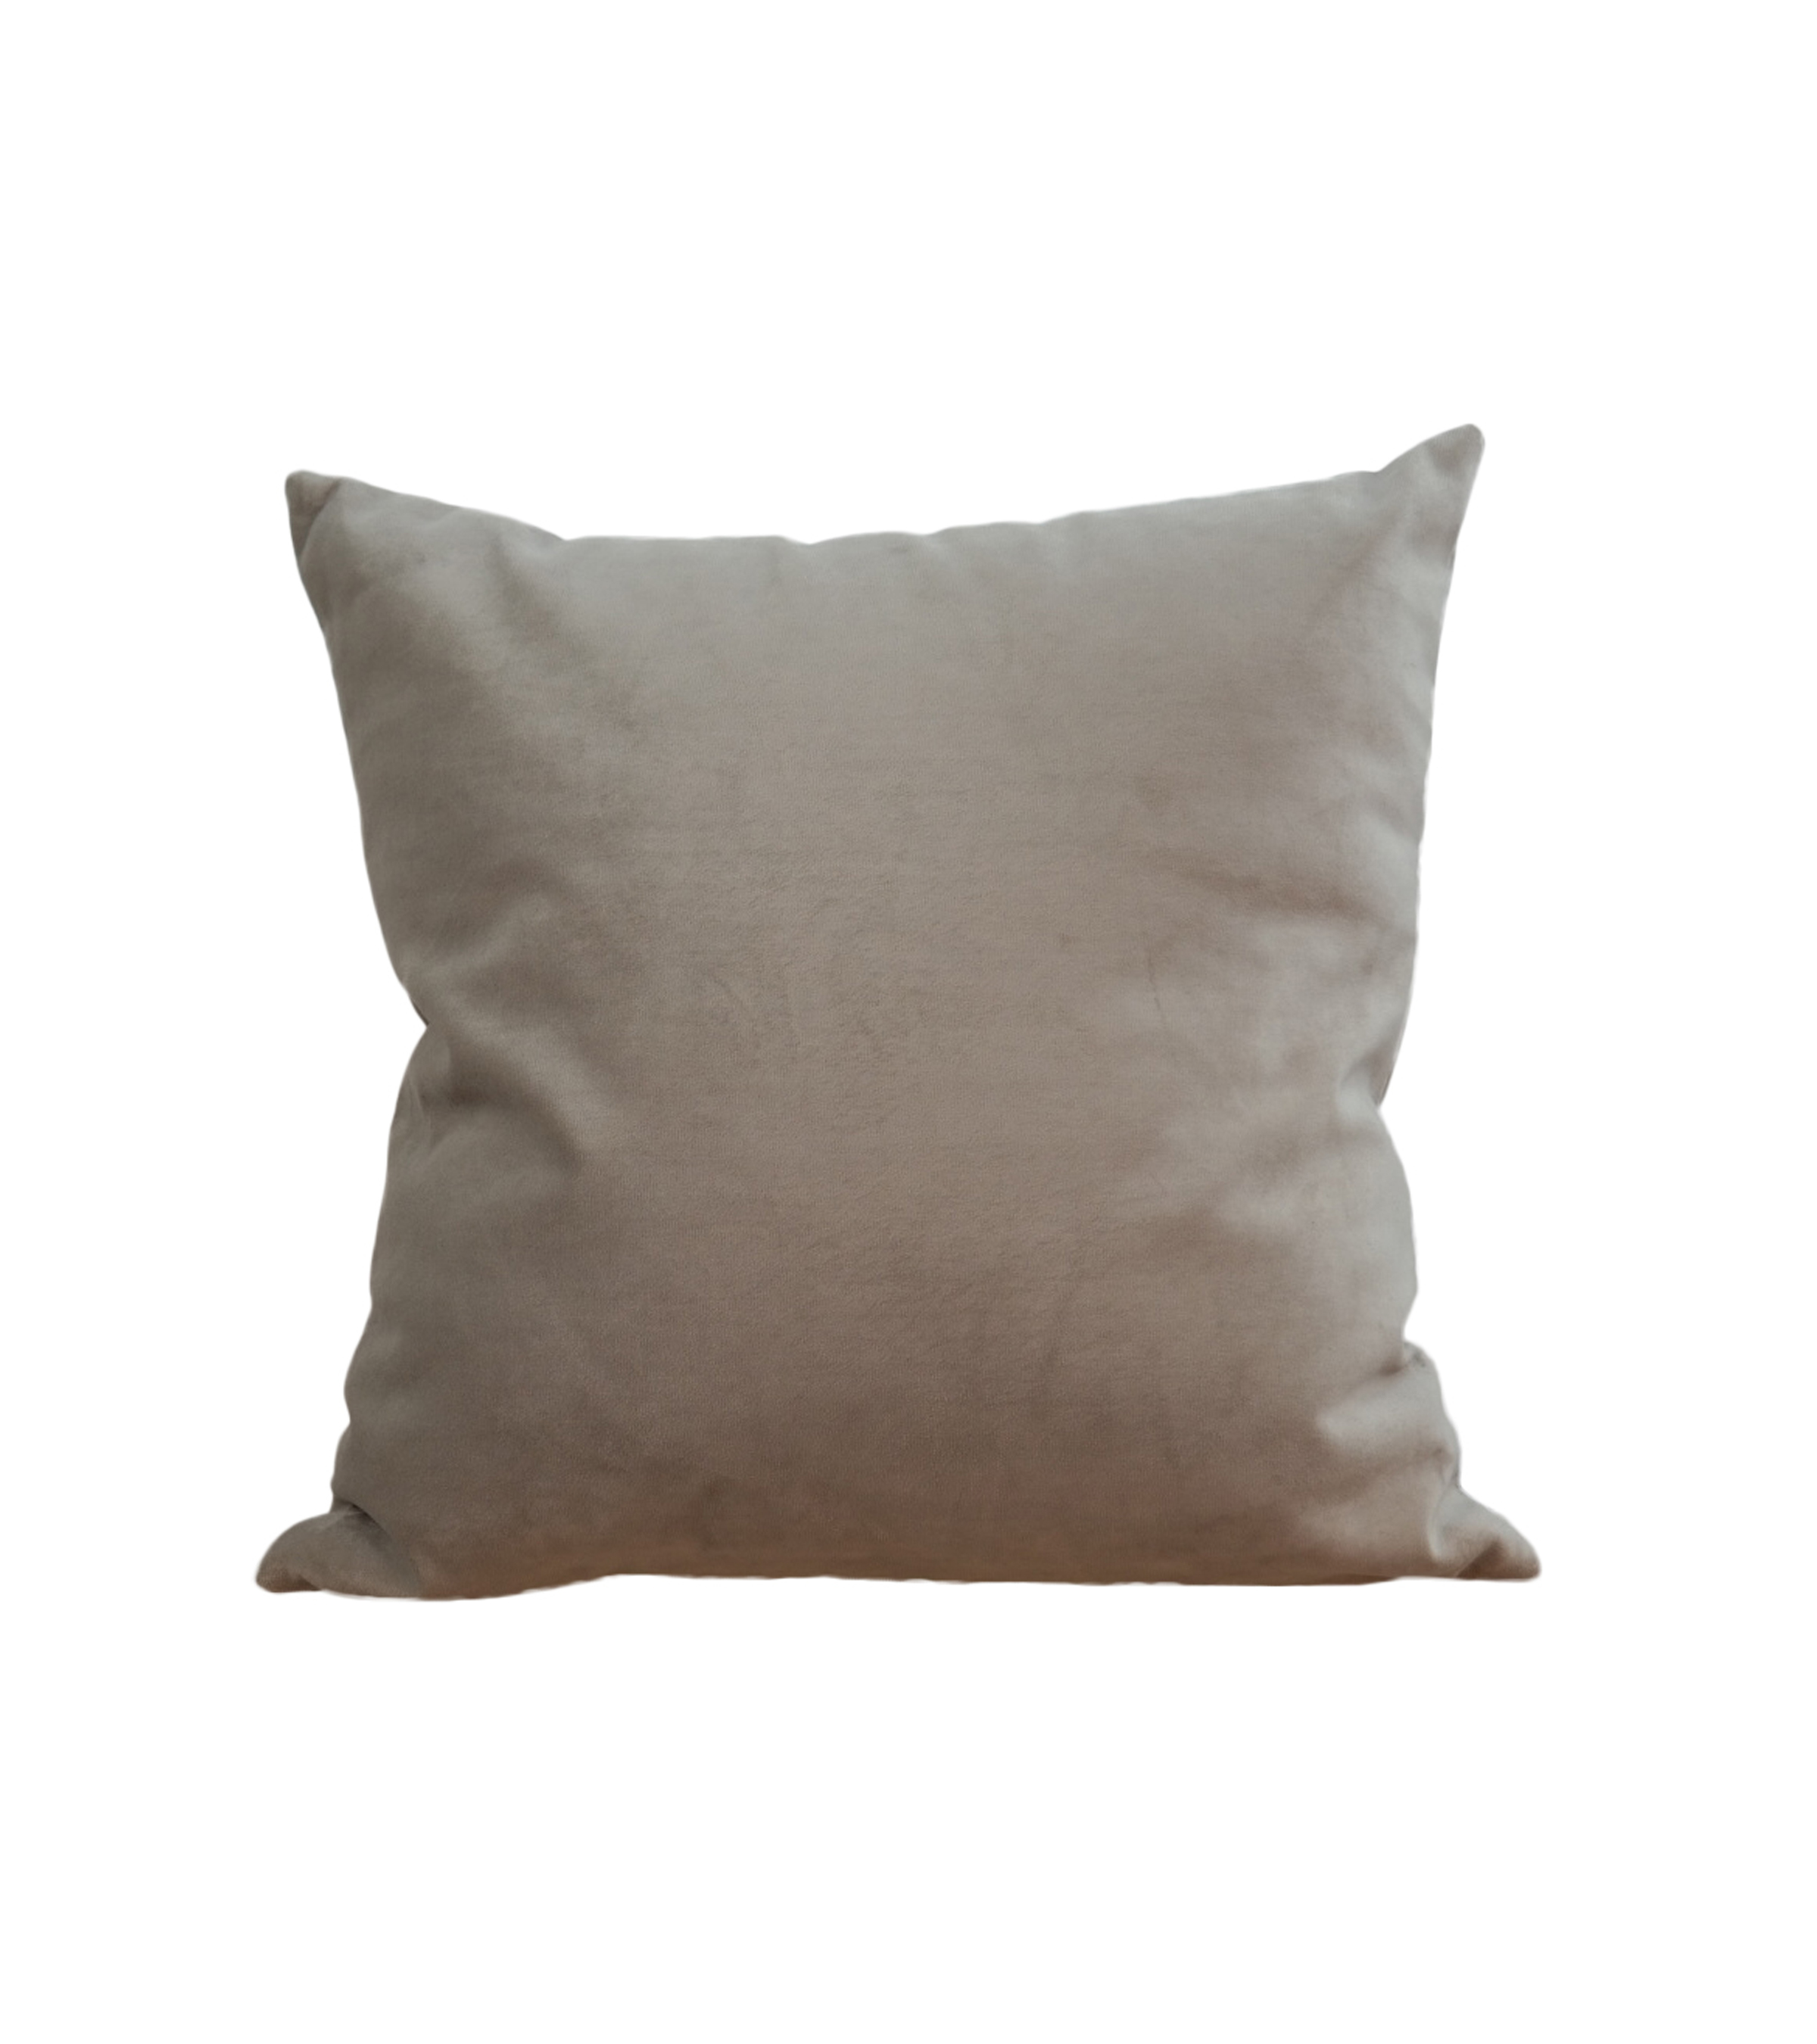 'Deco' cushion